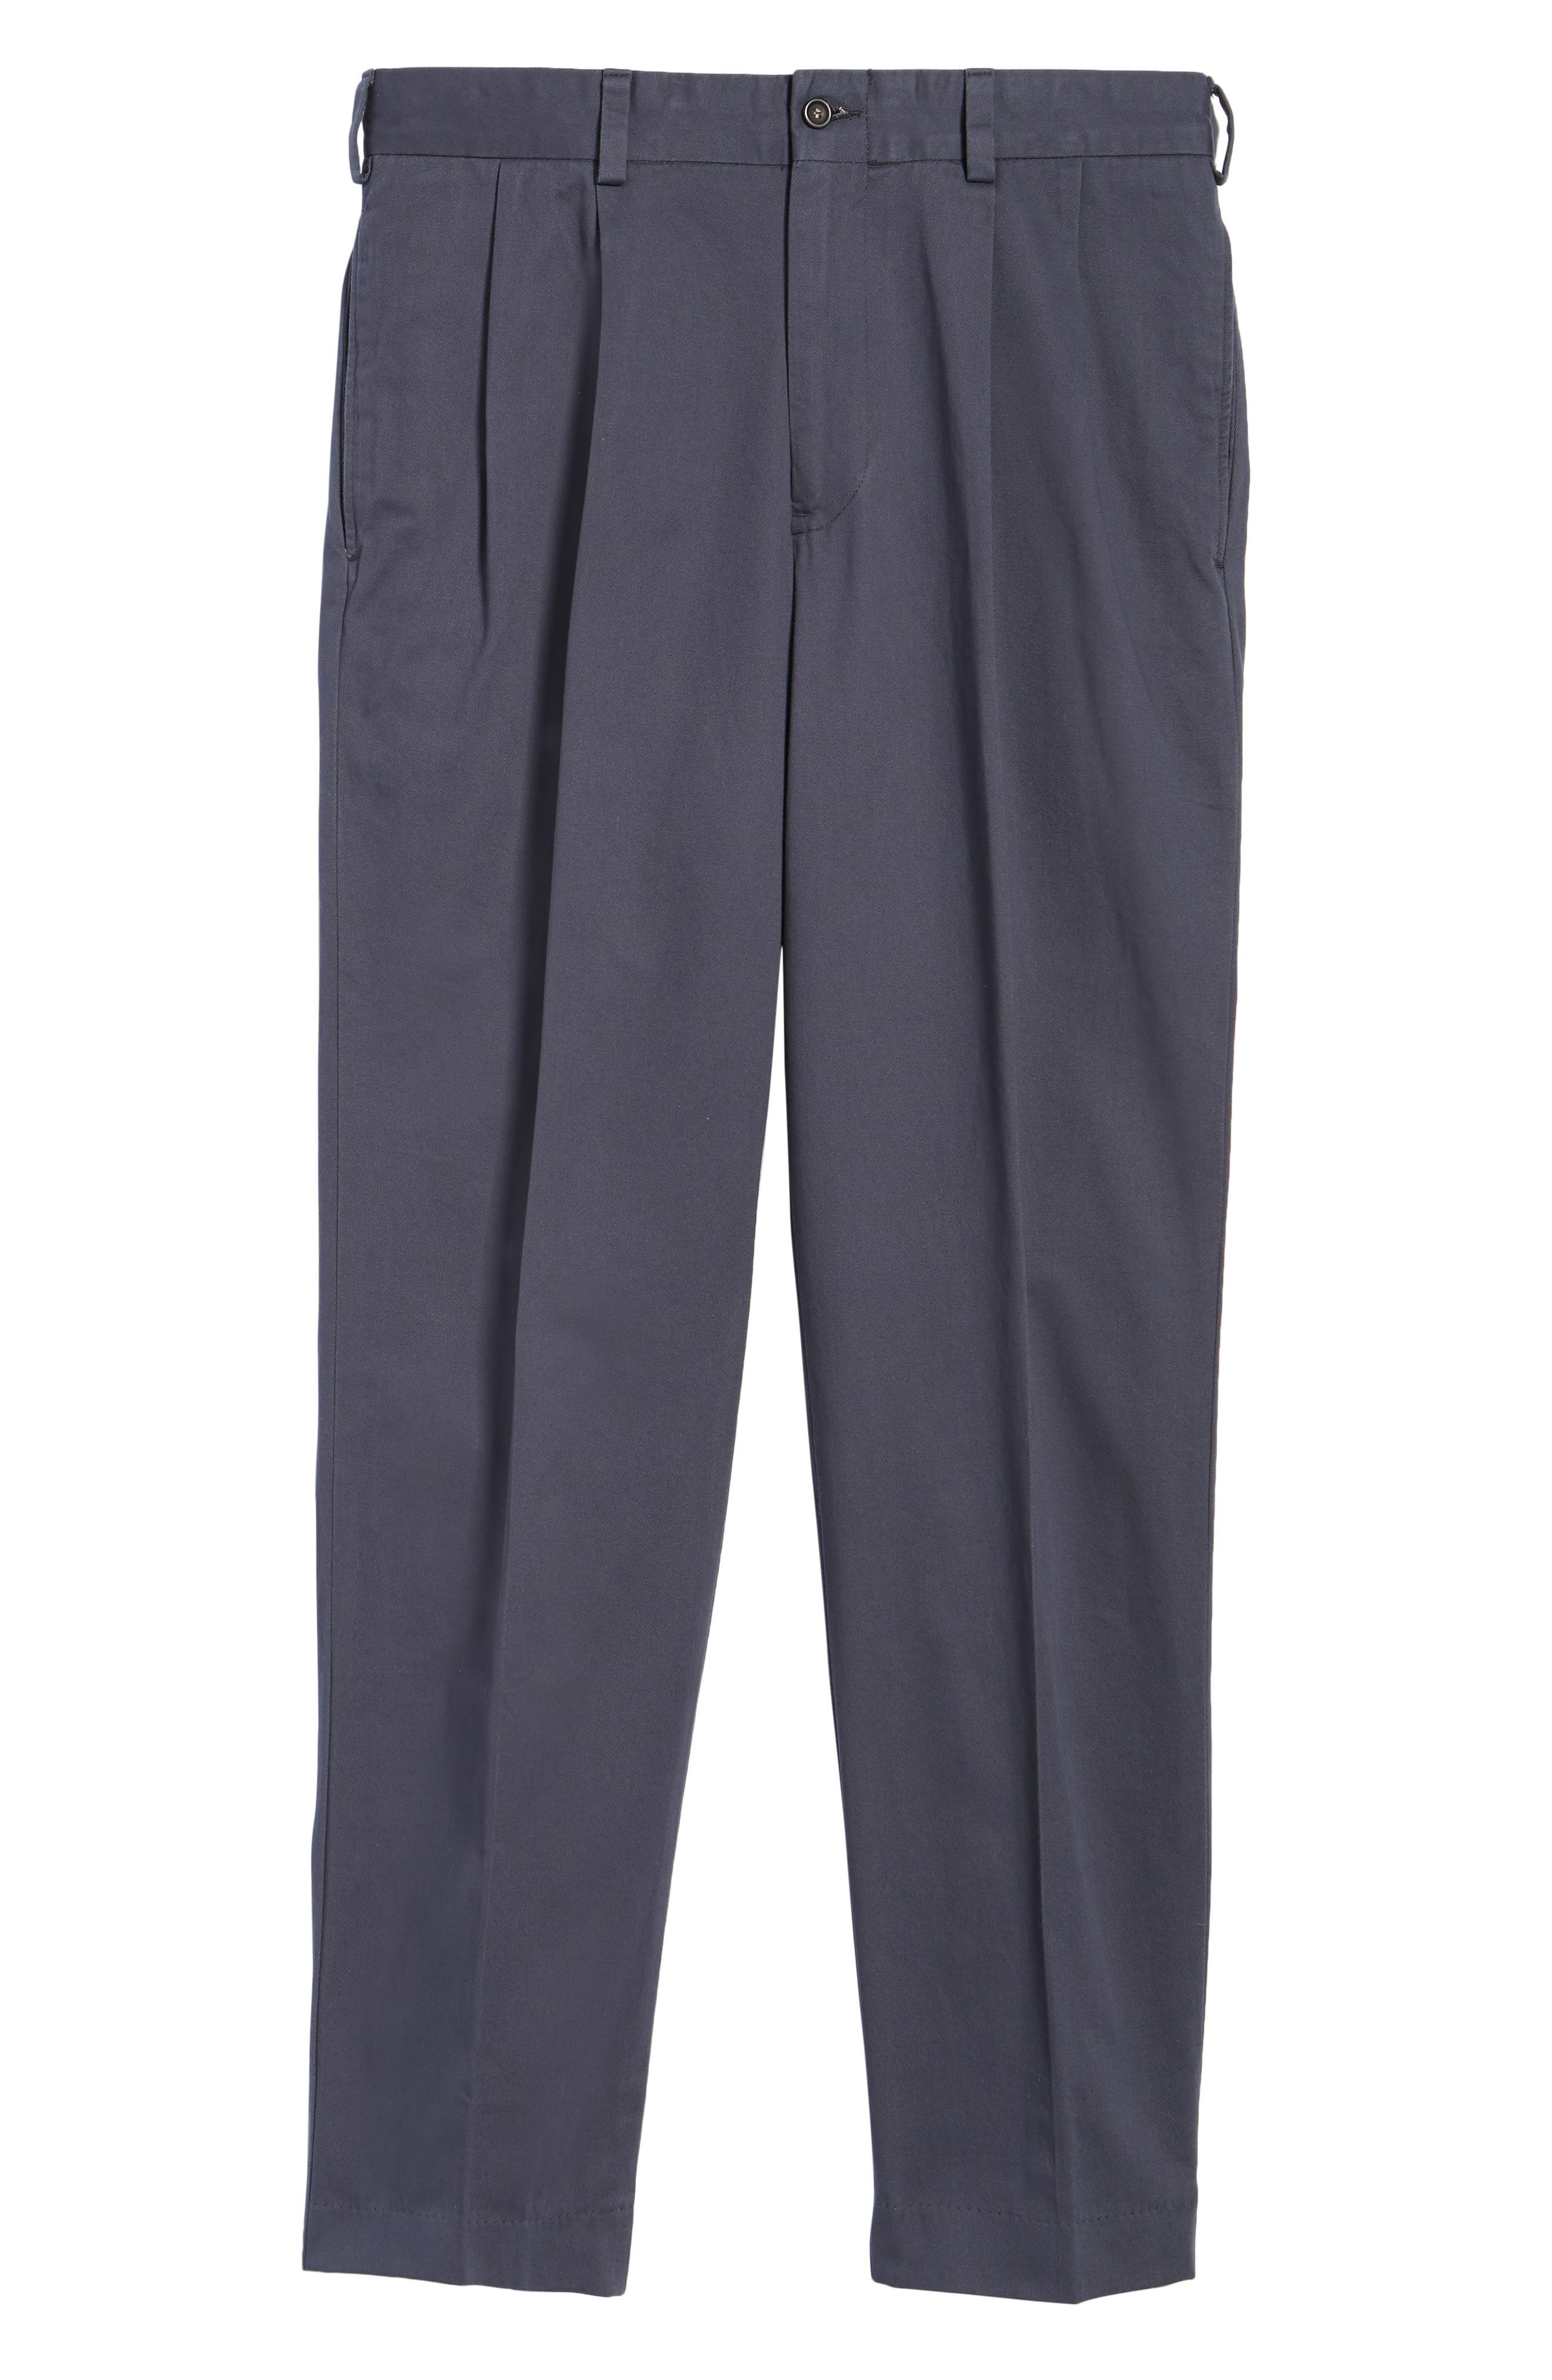 M2 Classic Fit Vintage Twill Pleated Pants,                             Alternate thumbnail 6, color,                             410